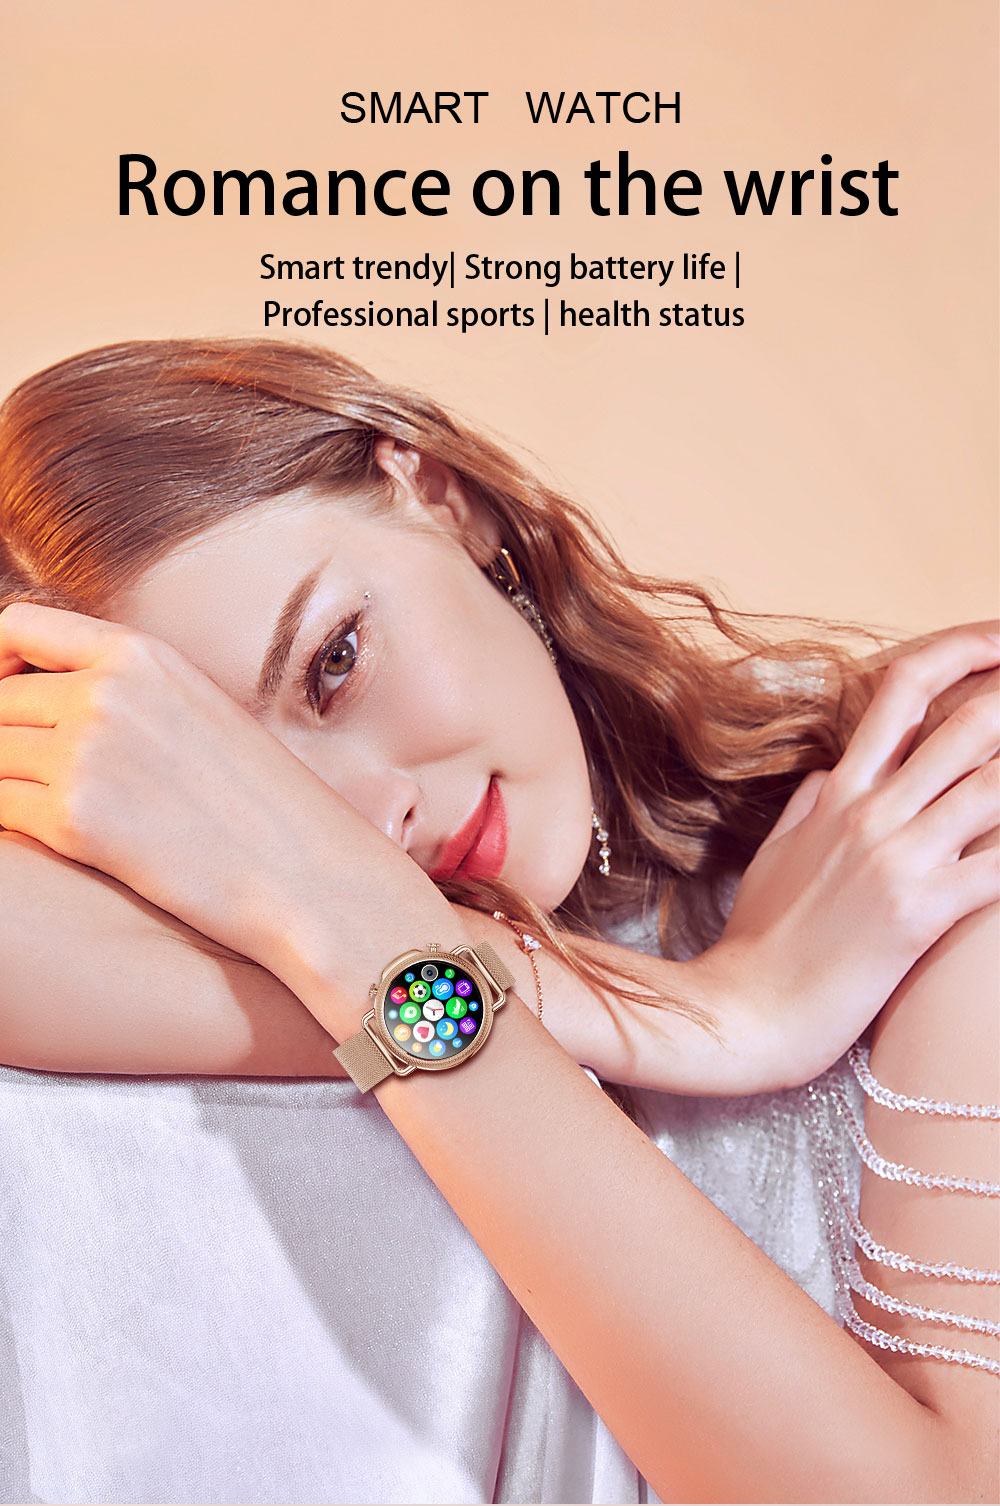 H6ca3a291474d448ea878df181863e4054 2021 Women Smart Watch 1.28 inch HD Screen IP67 Waterproof Lady's Watches Body Temperature Heart Rate Monitor PK V23